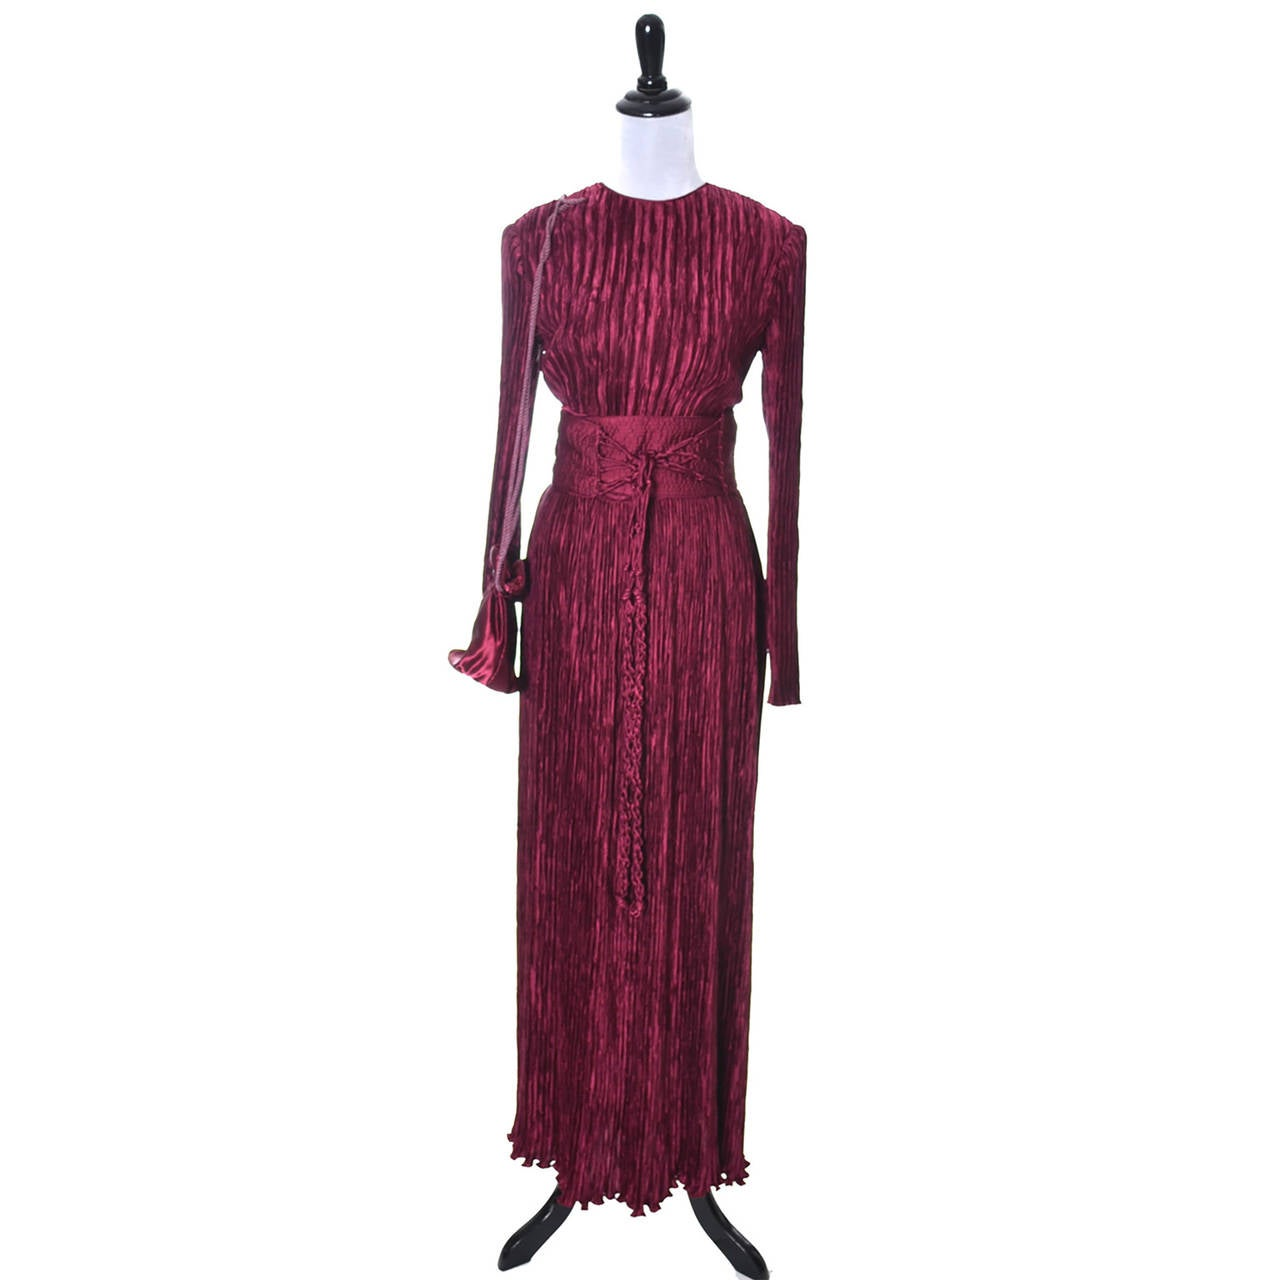 This Is A Gorgeous Red Wine Fortuny Style Pleated Evening Ensemble From Mary Mcfadden Couture Purchased